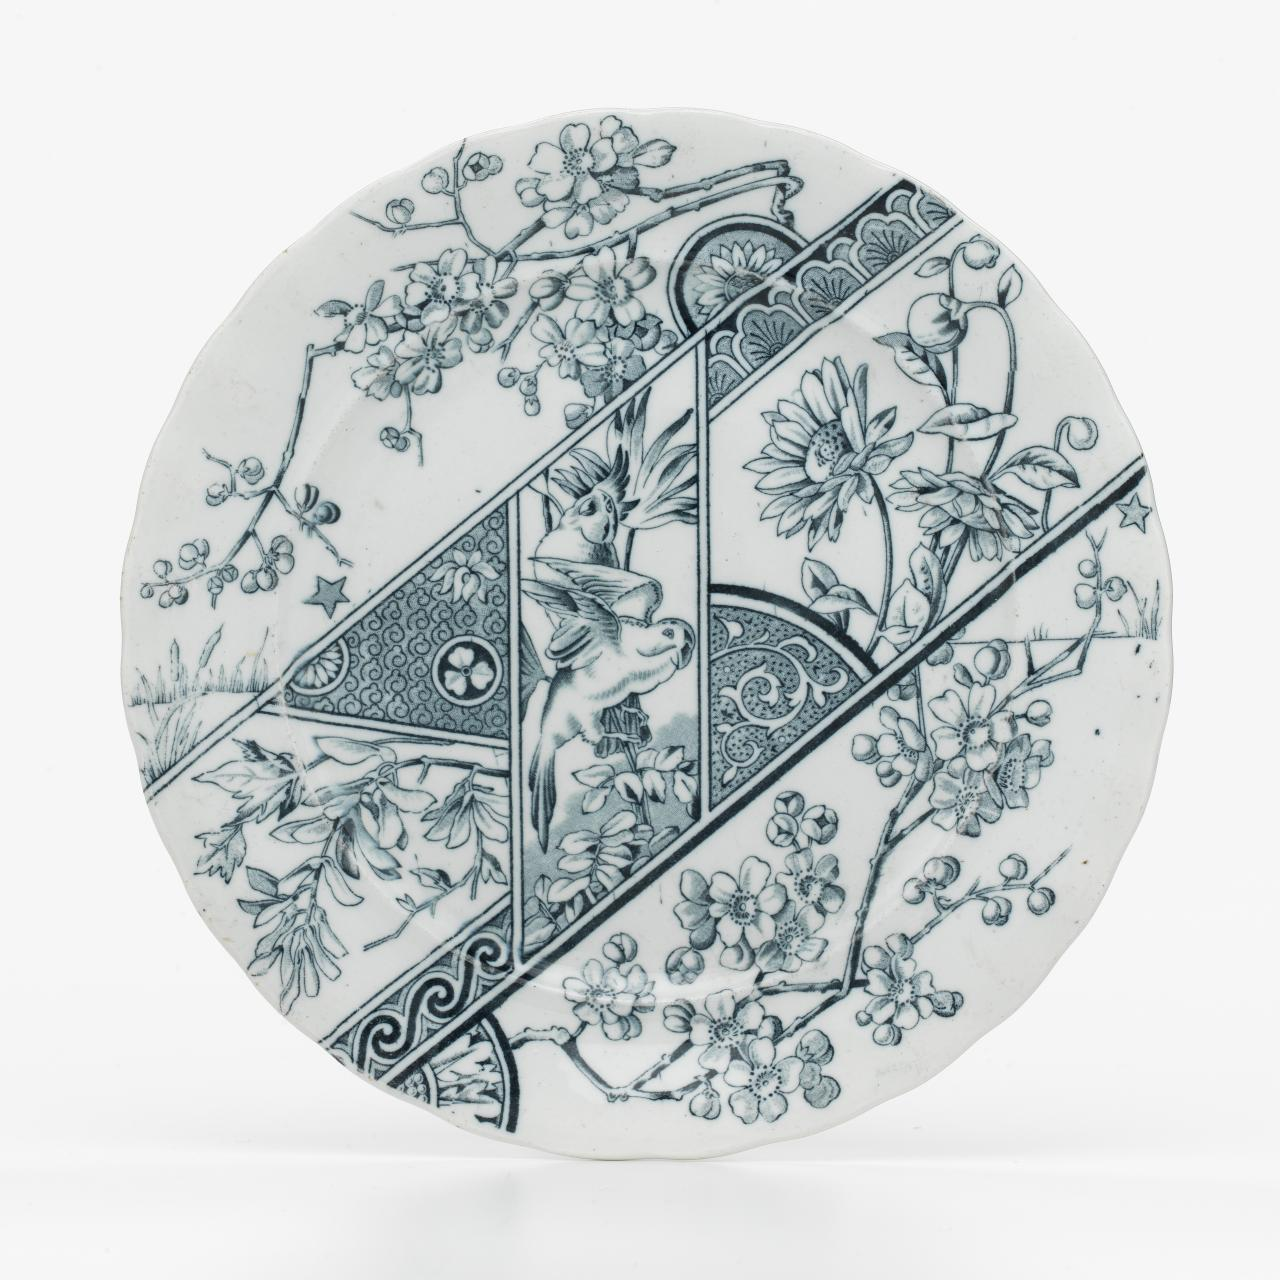 Melbourne pattern, plate